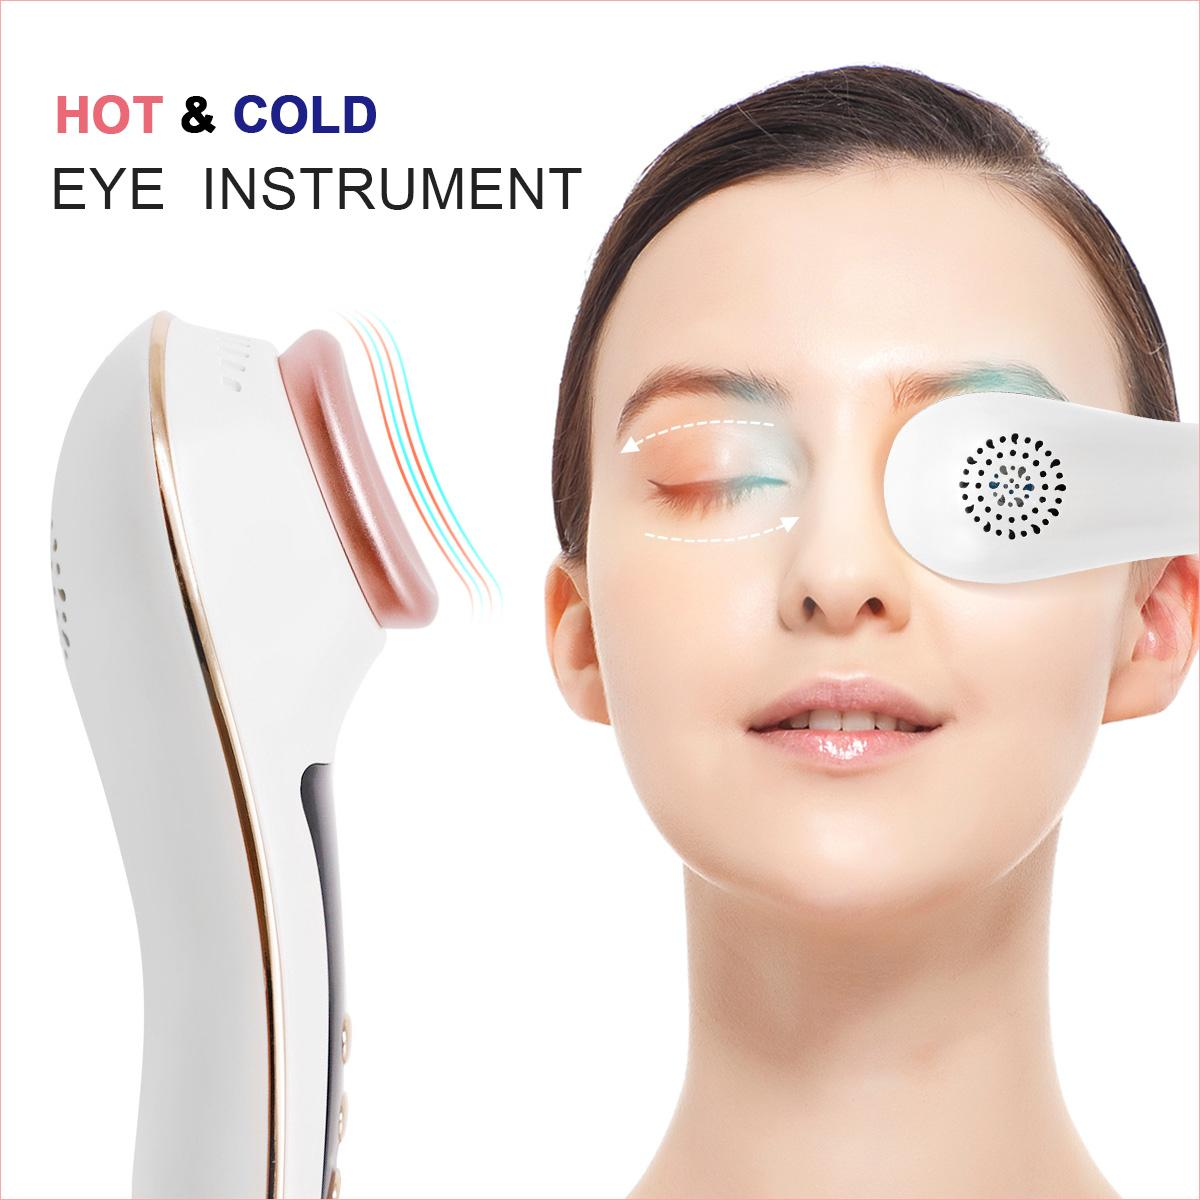 Portable Heated Vibrating Eye Massager For Dark Circle Fatigue & Puffiness Eye Eos Evolution Of Smooth Lip Balm Sphere Blackberry Nectar - 0.25 Oz, 6 Pack